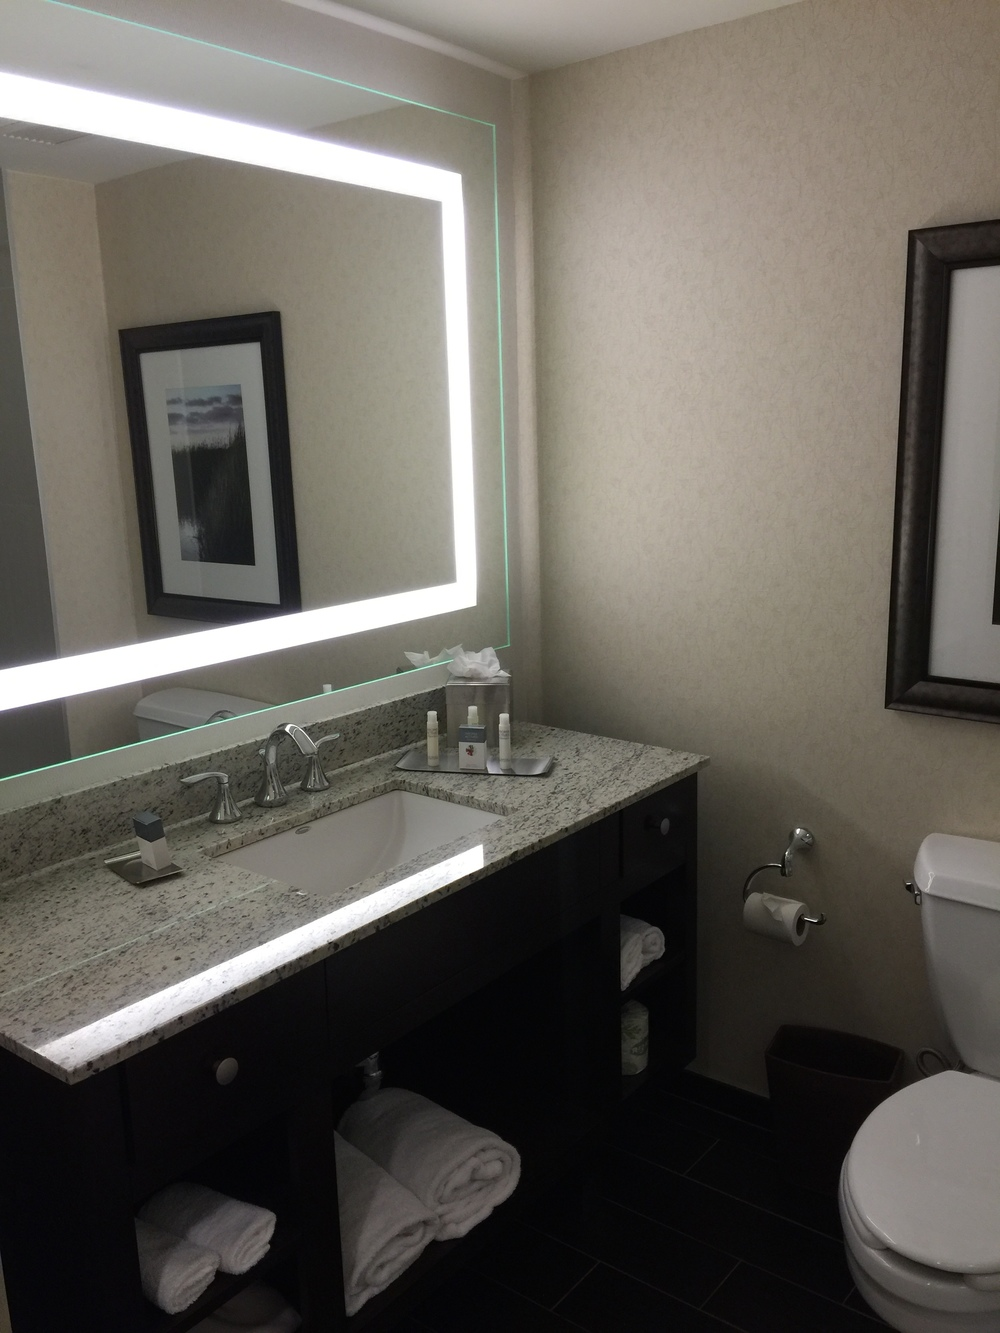 I really liked the light-surround in the bathroom!  (click to enlarge)